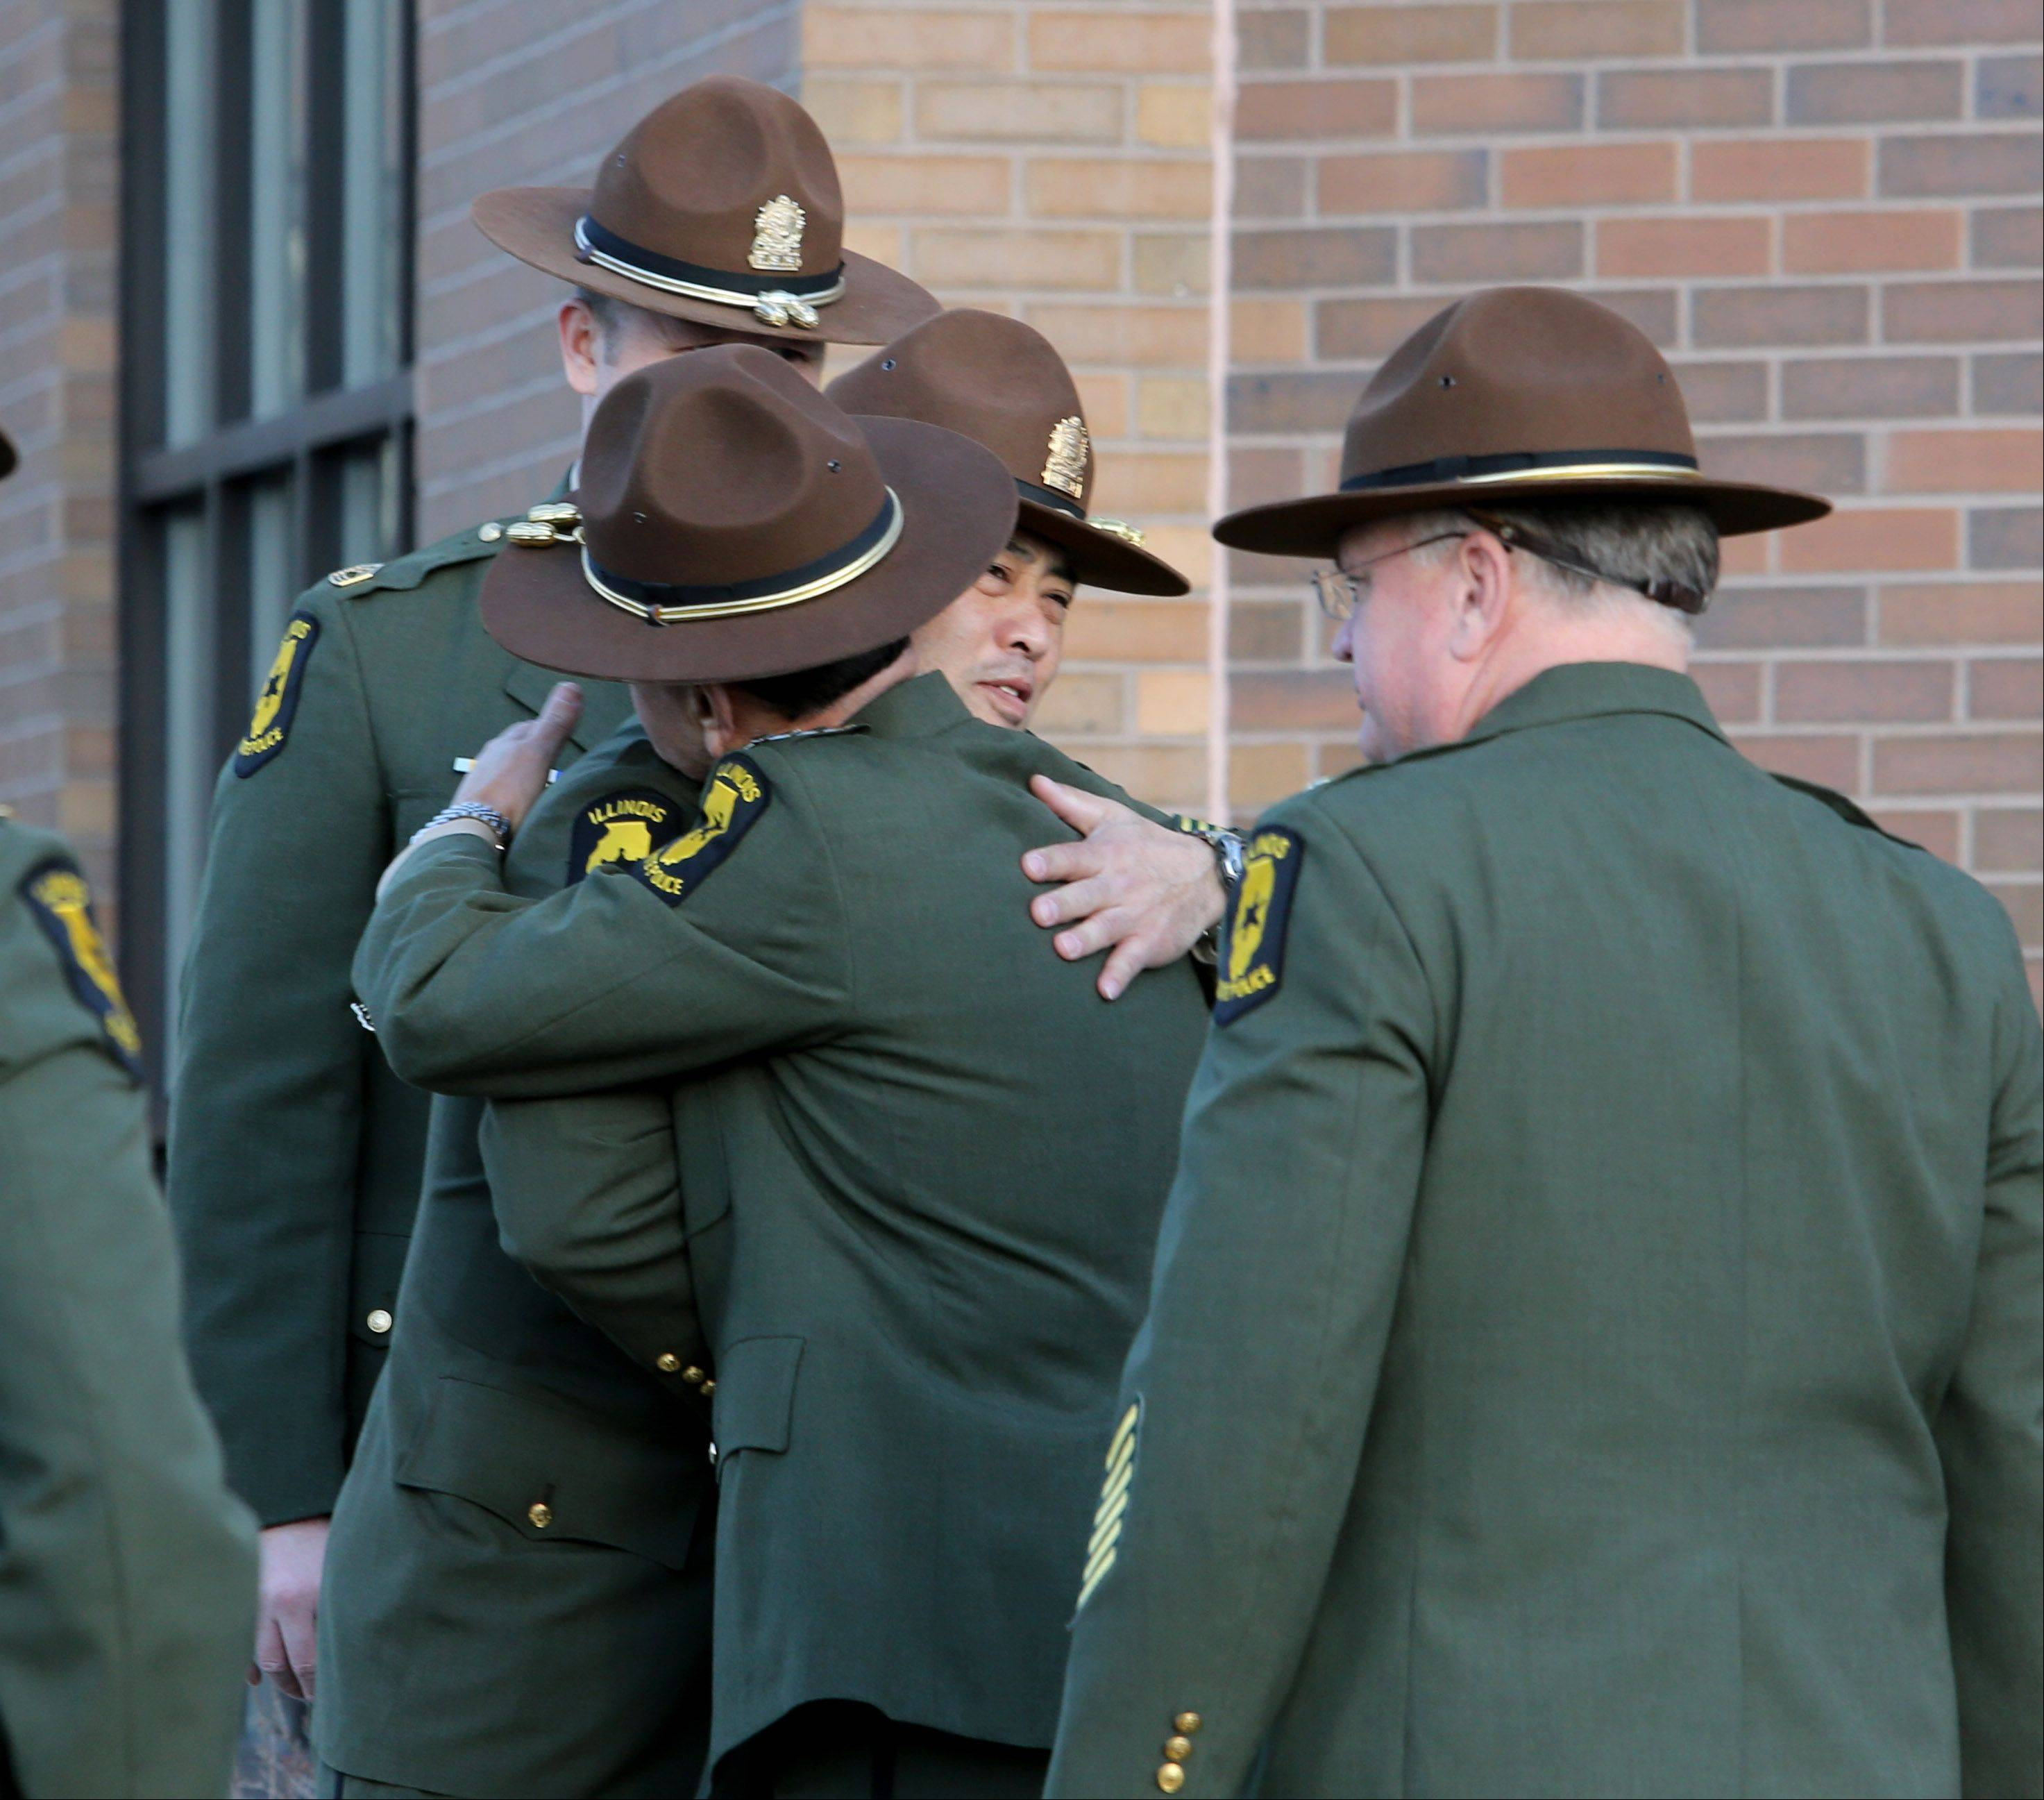 Illinois state troopers and other mourners gather for the visitation of James Sauter at Moraine Valley Church in Palos Heights on Monday. He was an Illinois state trooper from Vernon Hills, who was killed early Friday morning on the job.